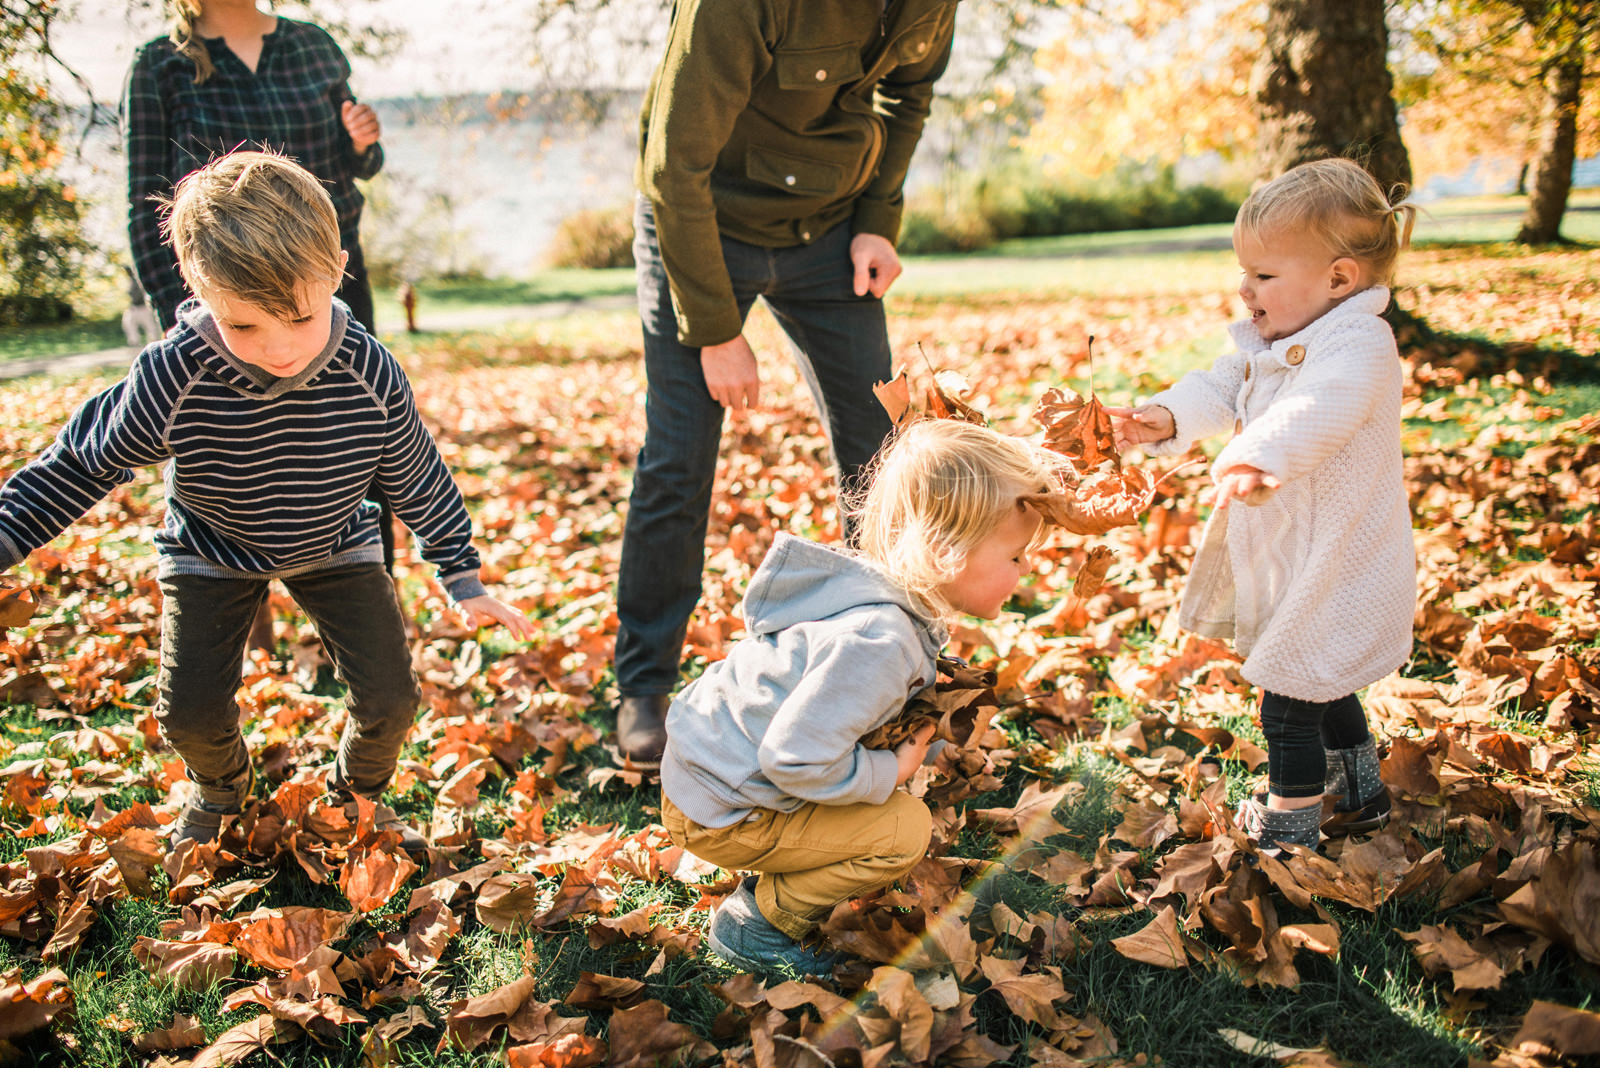 218-best-seattle-family-photographer-ryan-flynn-image-at-seward-park-with-fall-leaves.jpg